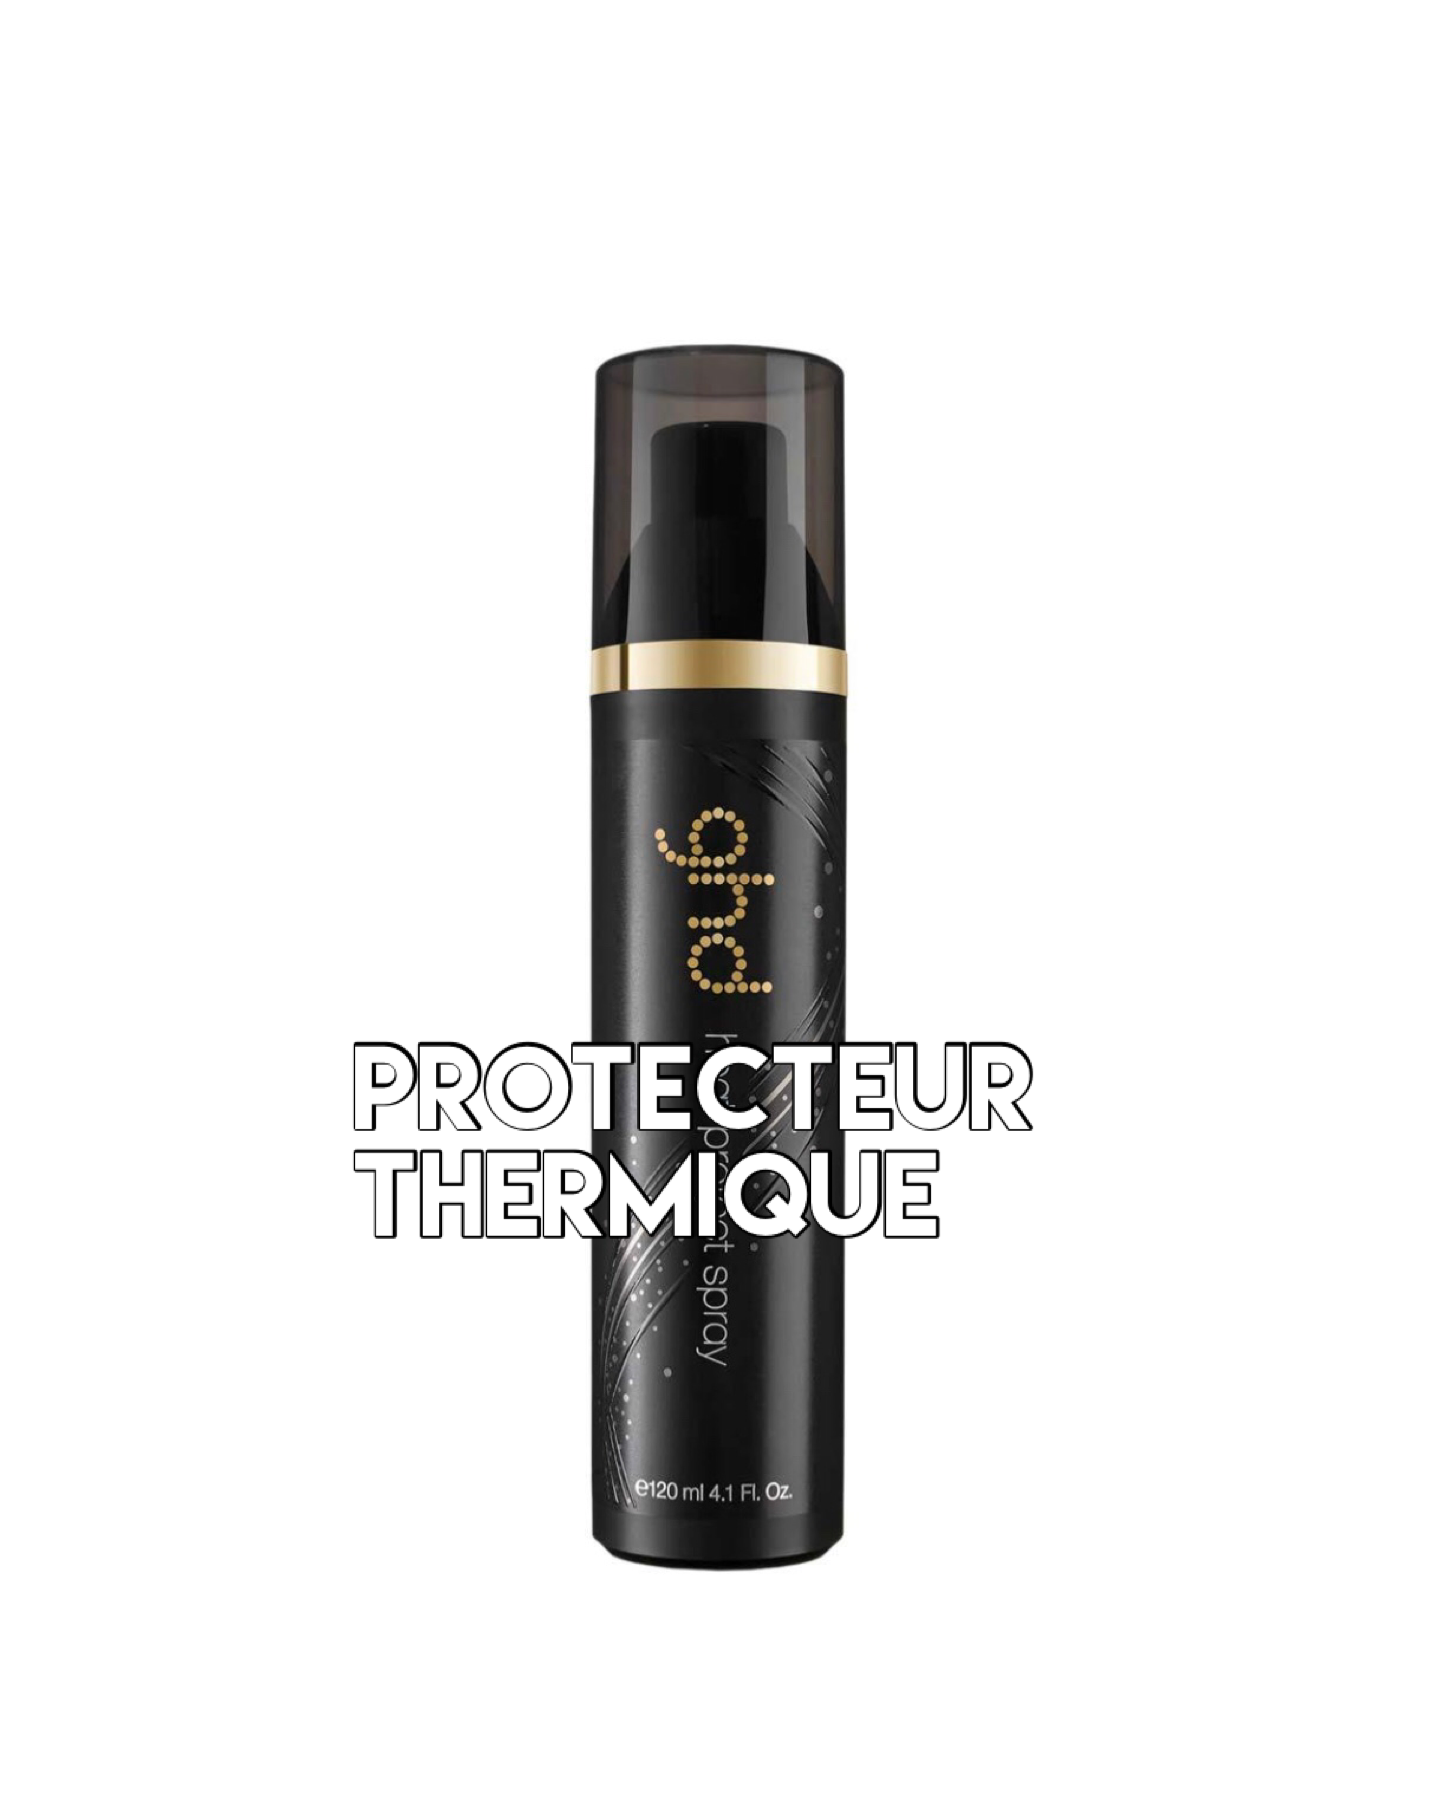 Spray Thermo-Protecteur ghd